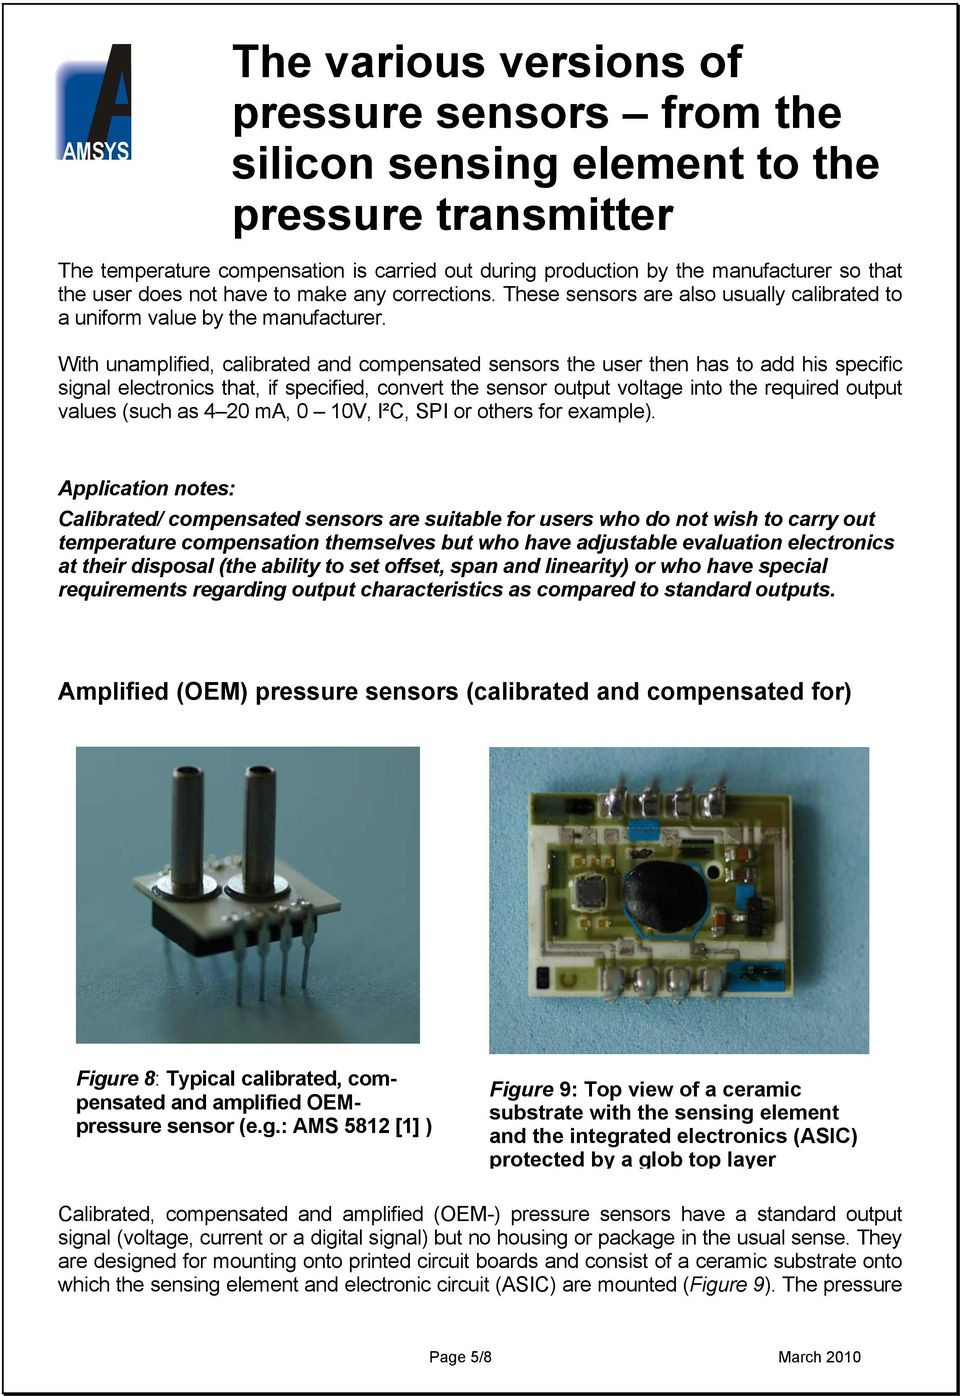 The Various Versions Of Pressure Sensors From Silicon Sensing Programmable Transducer Circuit With Unamplified Calibrated And Compensated User Then Has To Add His Specific Signal